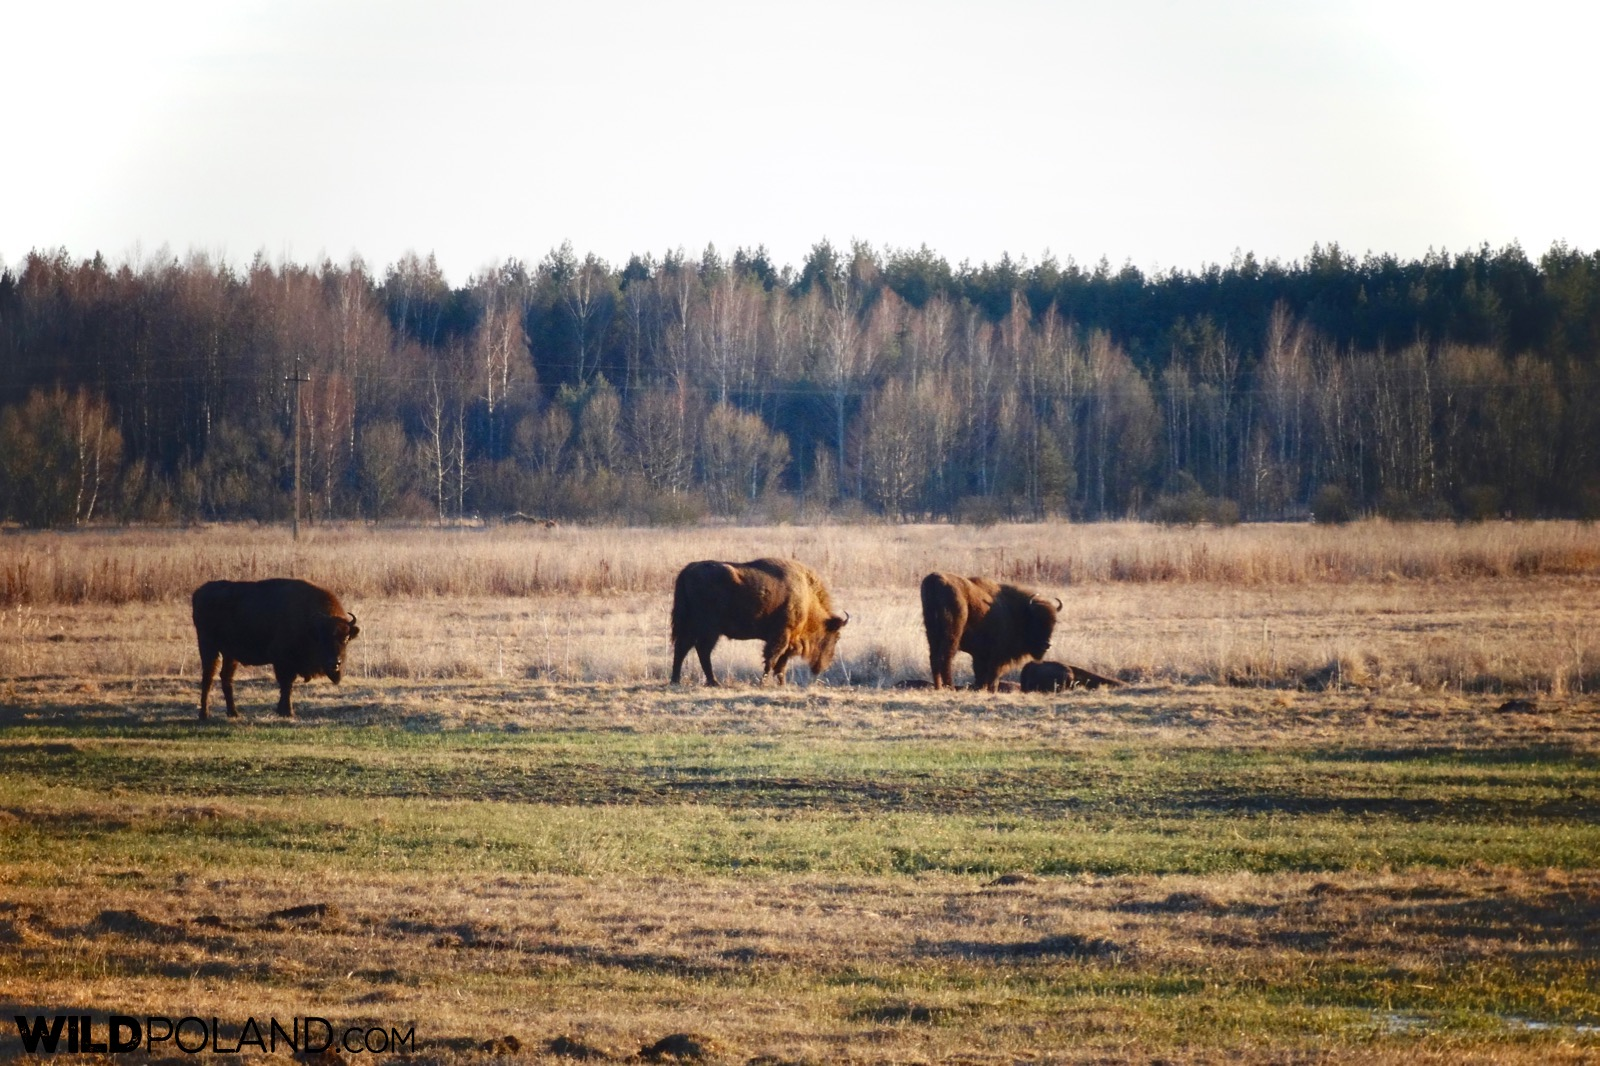 Bison at the meadow outside of Białowieża village, photo by Piotr Dębowski